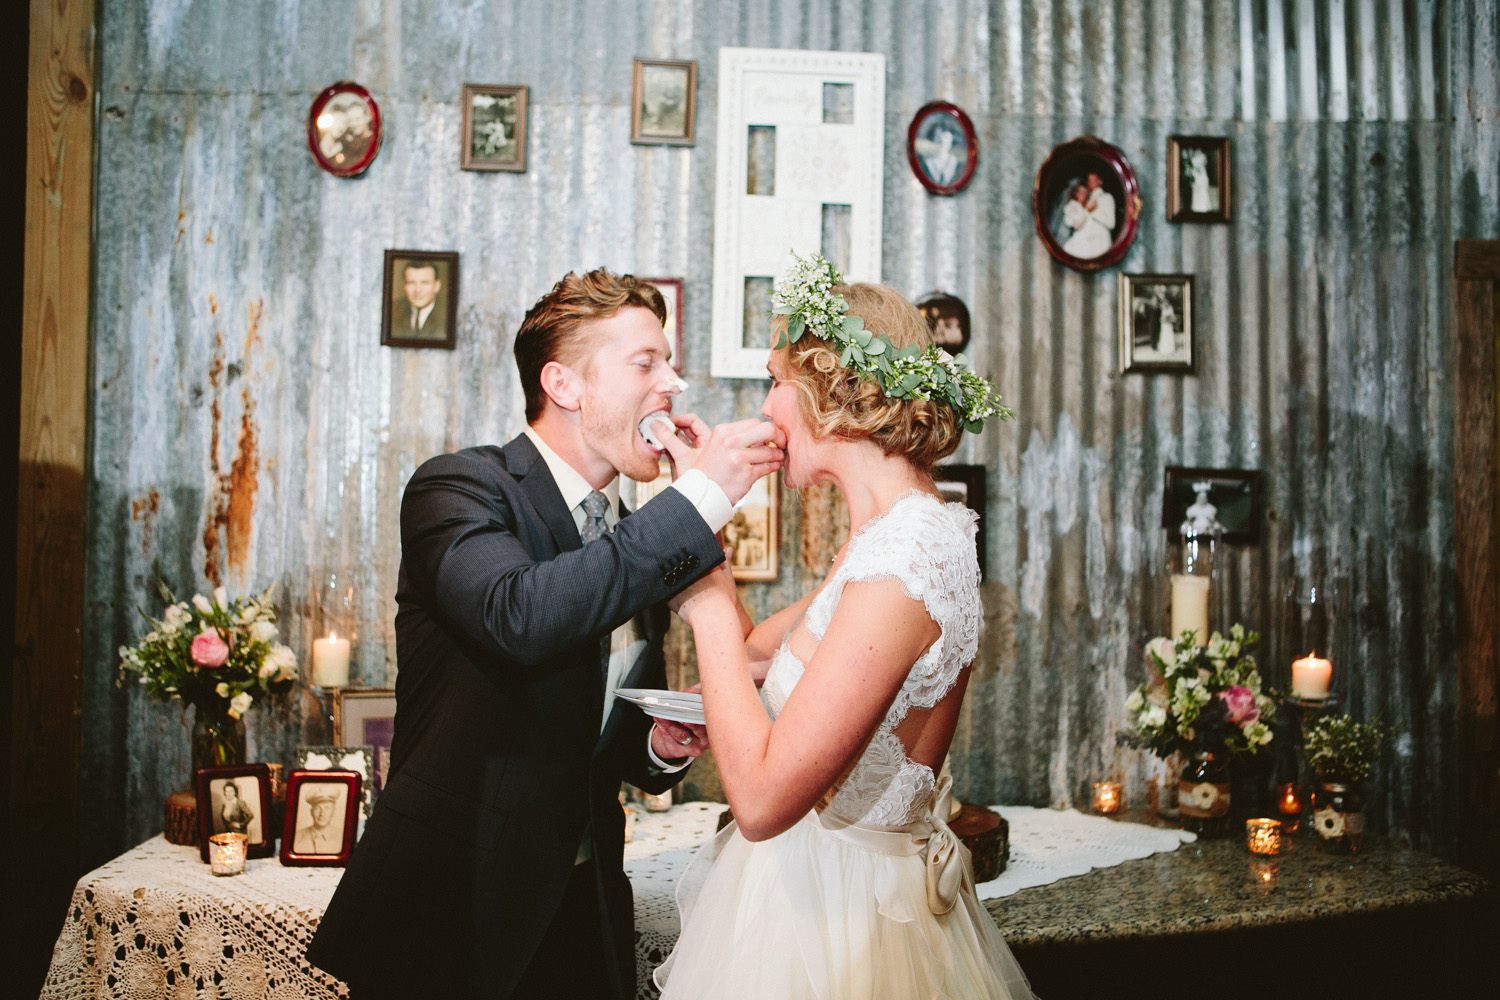 Bride and Groom at Vintage Cake Table | Lisa Woods Photography